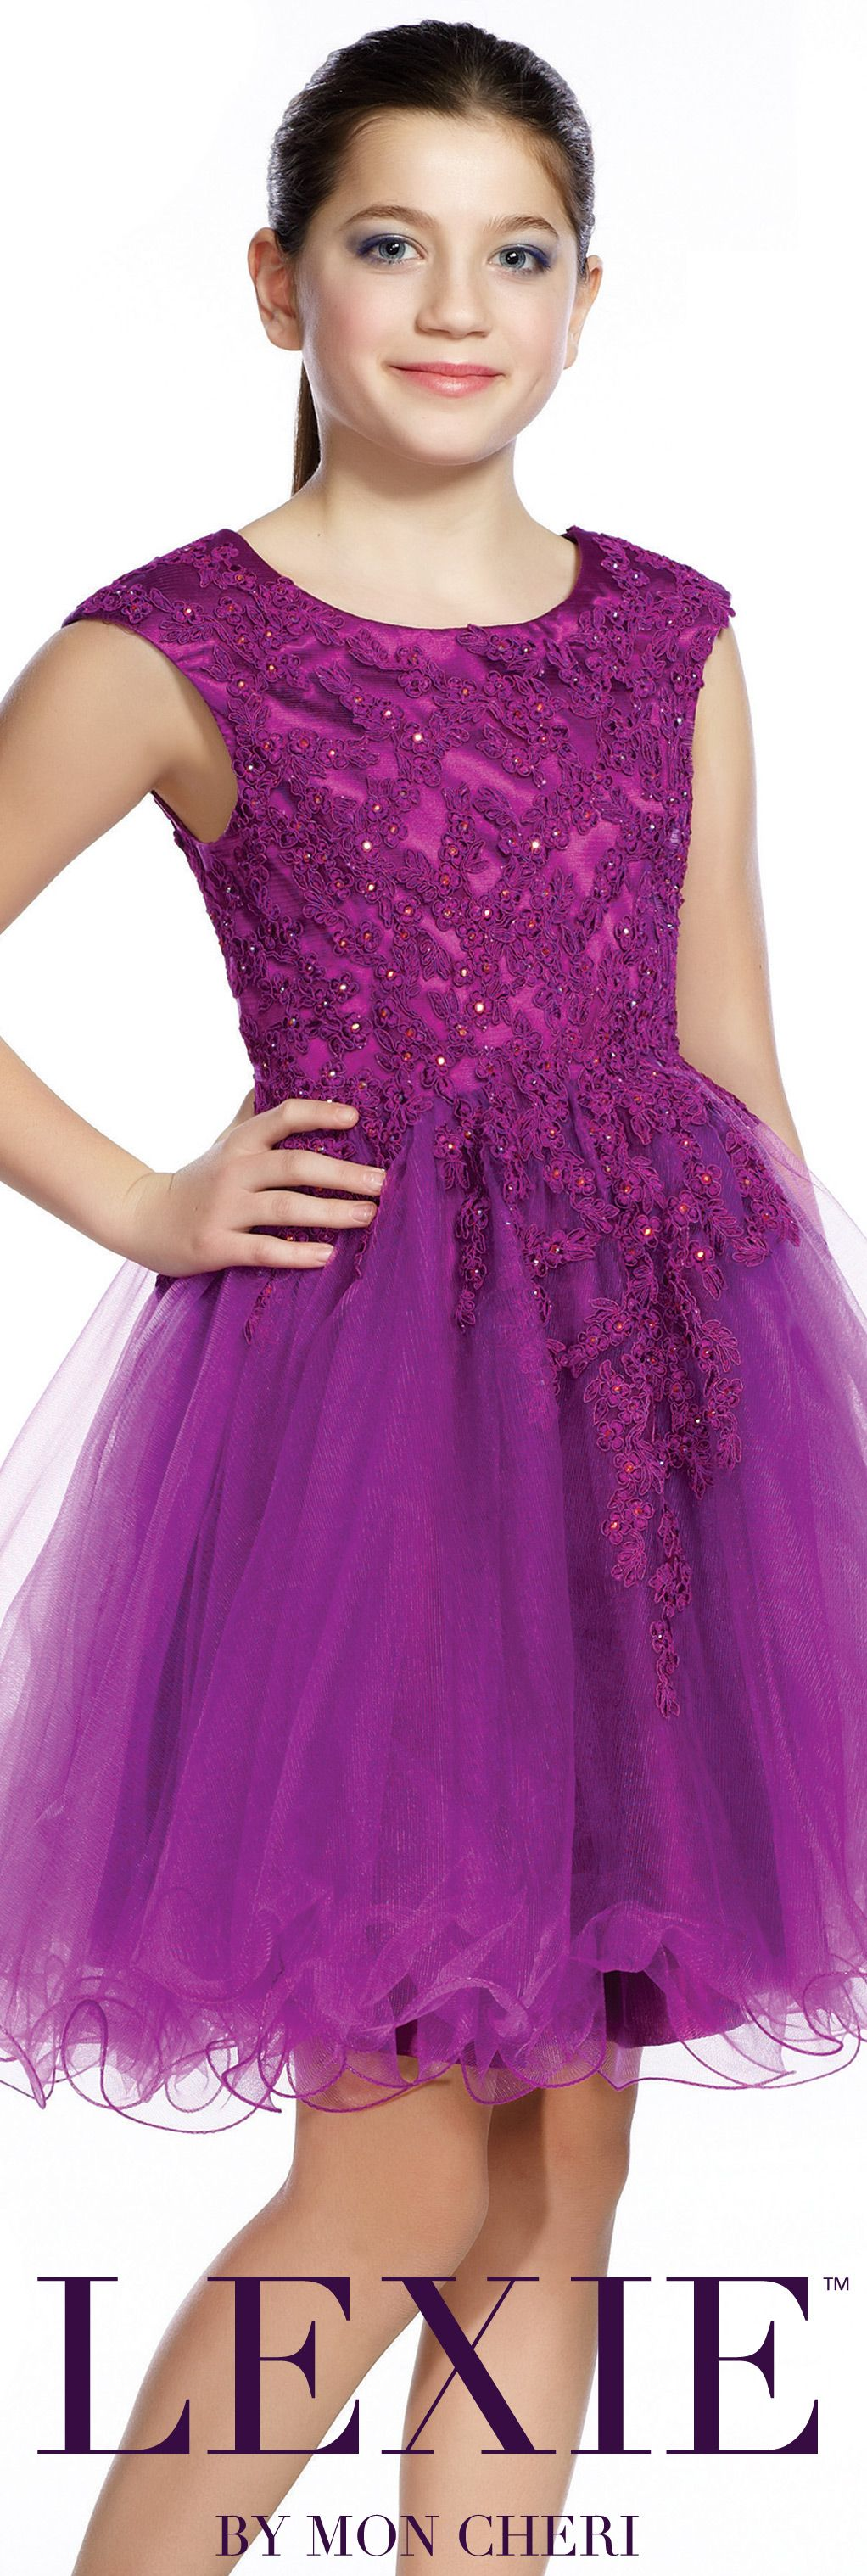 Lexie by Mon Cheri - Tween Formal Dress - Style No. TW21535 ...